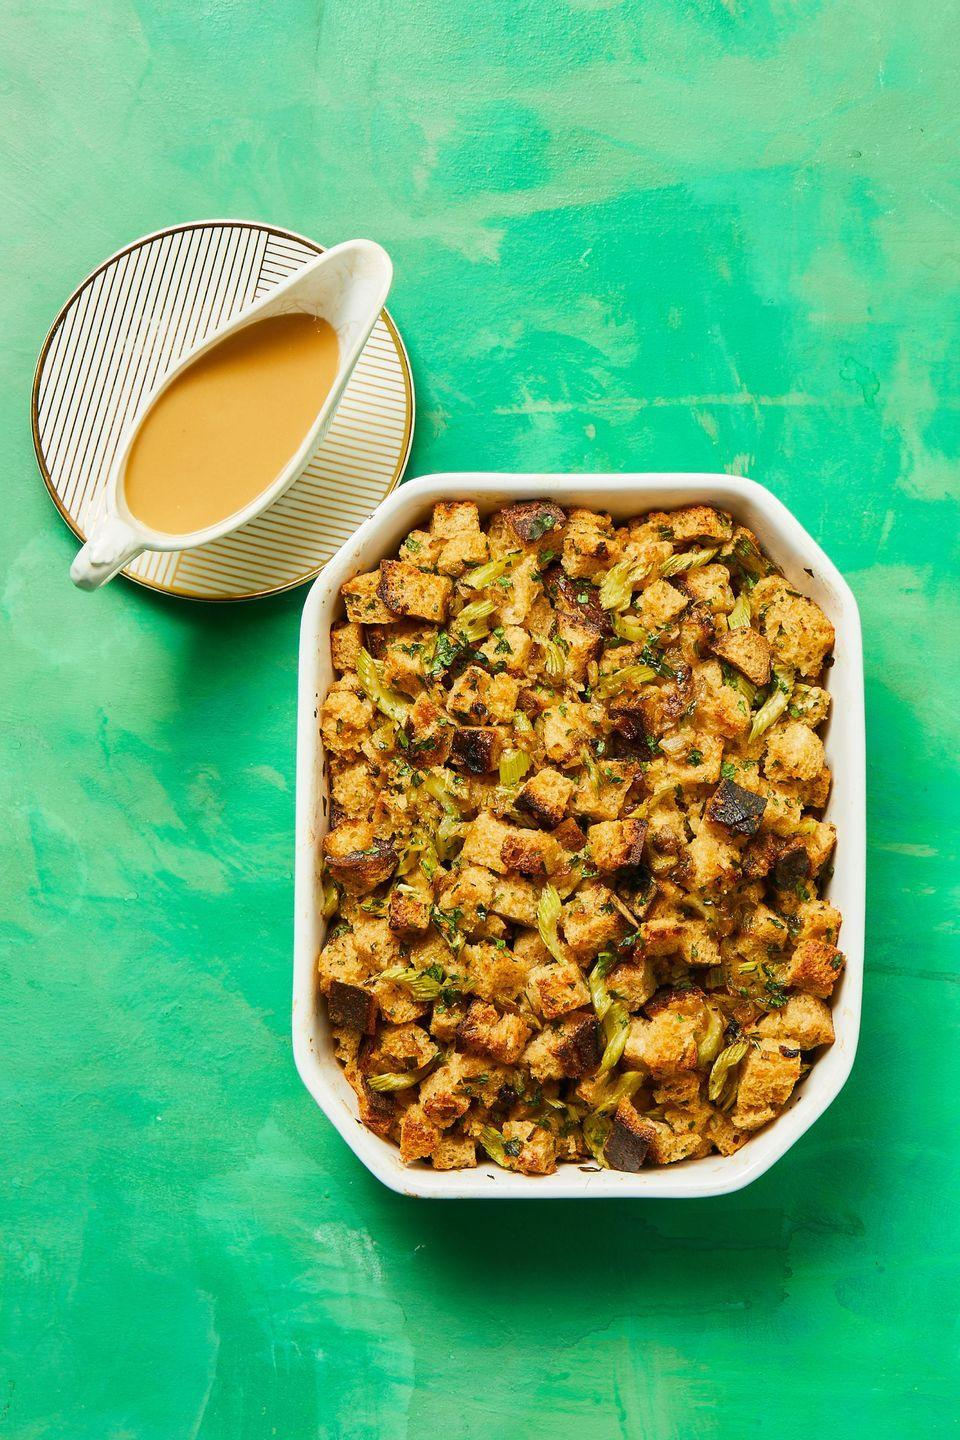 """<p>Sourdough provides the perfect amount of tang to balance this buttery stuffing, which is packed with fresh thyme and parsley.</p><p><strong><em><a href=""""https://www.womansday.com/food-recipes/a34129159/sourdough-herb-stuffing-recipe/"""" rel=""""nofollow noopener"""" target=""""_blank"""" data-ylk=""""slk:Get the Sourdough Herb Stuffing recipe."""" class=""""link rapid-noclick-resp"""">Get the Sourdough Herb Stuffing recipe. </a></em></strong></p>"""